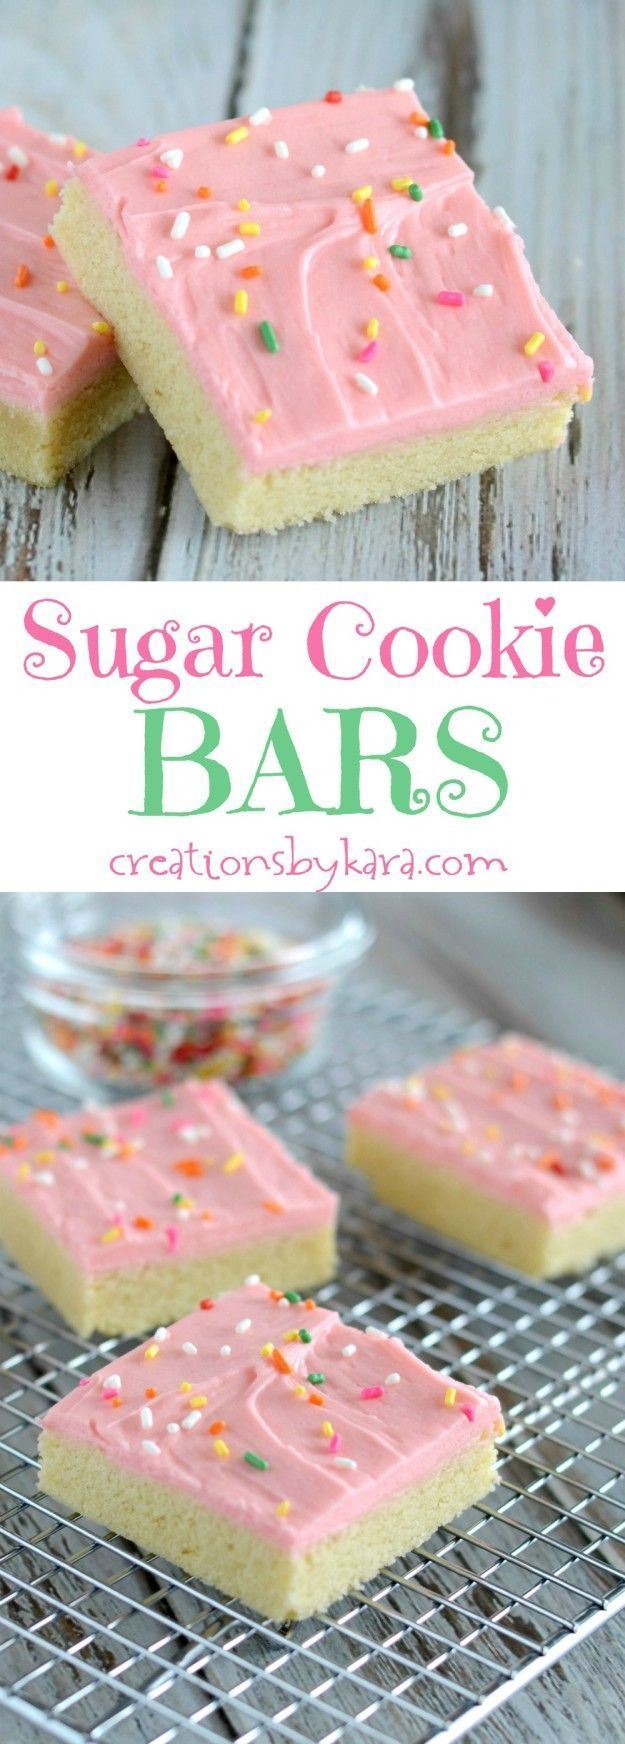 Best Ever Sugar Cookie Bars- all the flavor of sugar cookies without all the work!